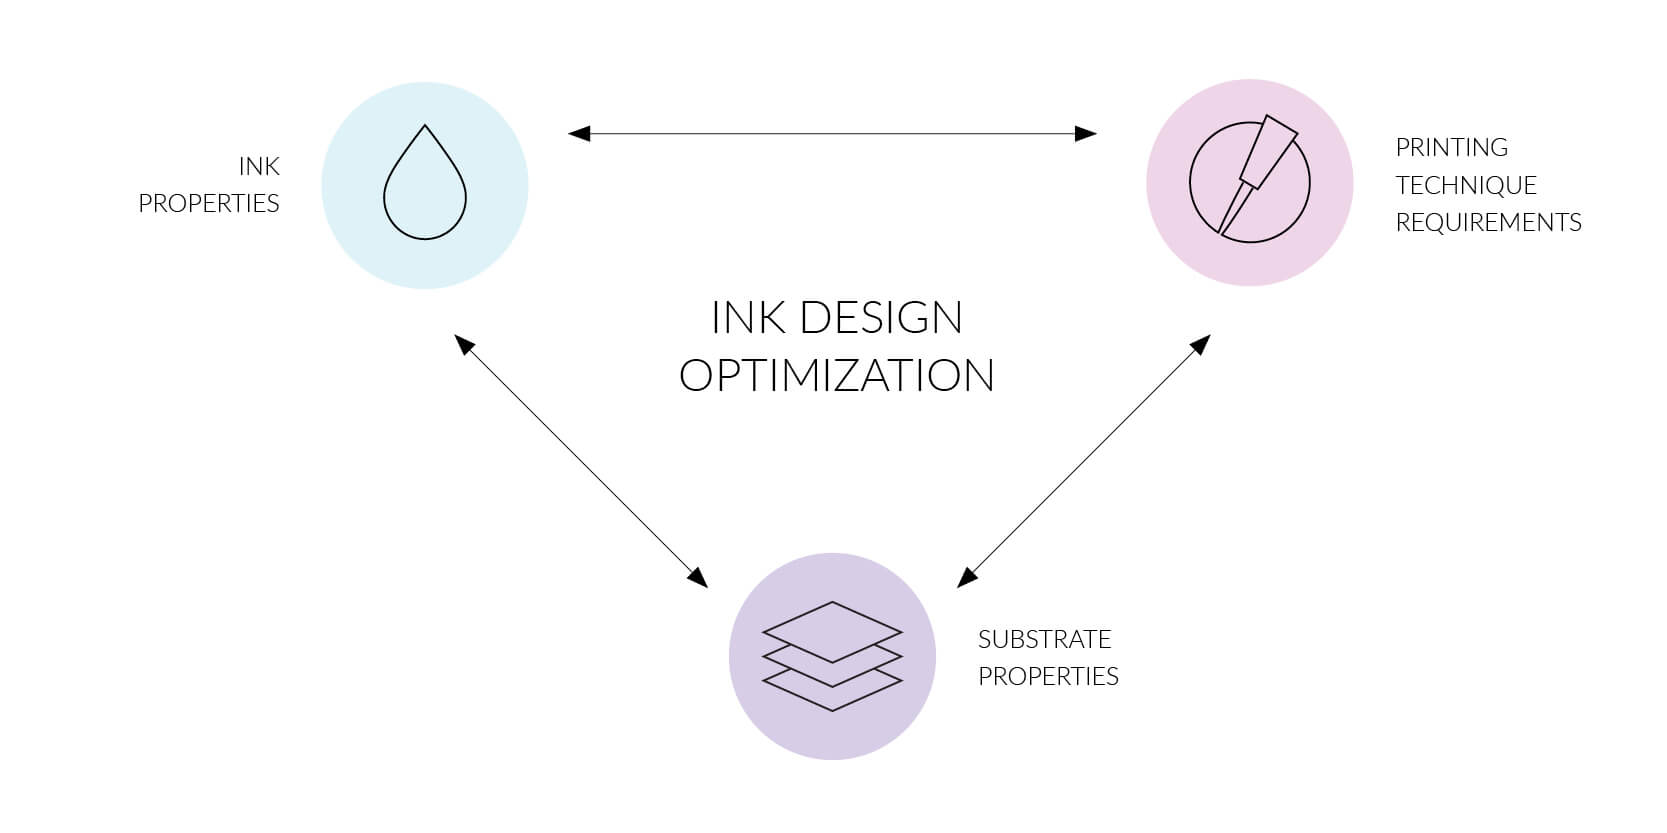 Image showing the relationships between the most important factors in ink design optimisation